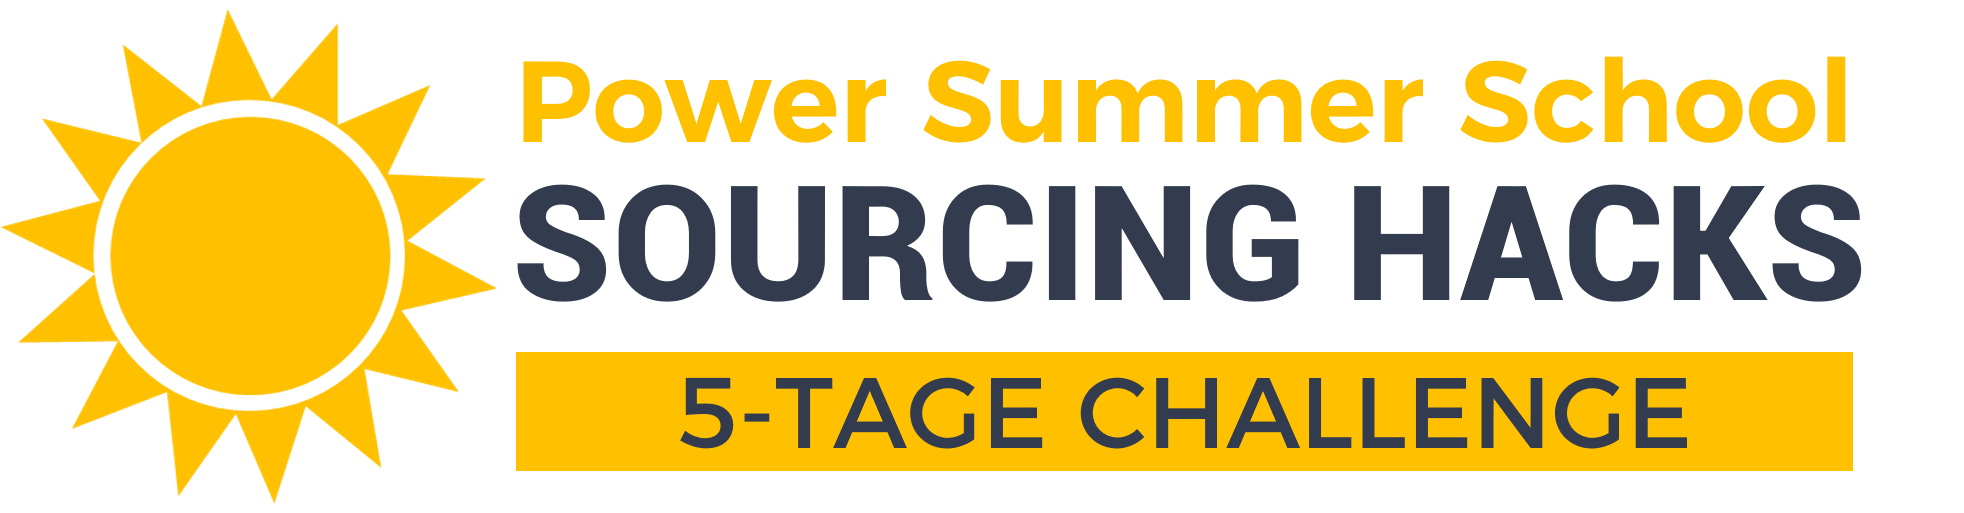 Summer School - Sourcing Hacks 2020 - Logo